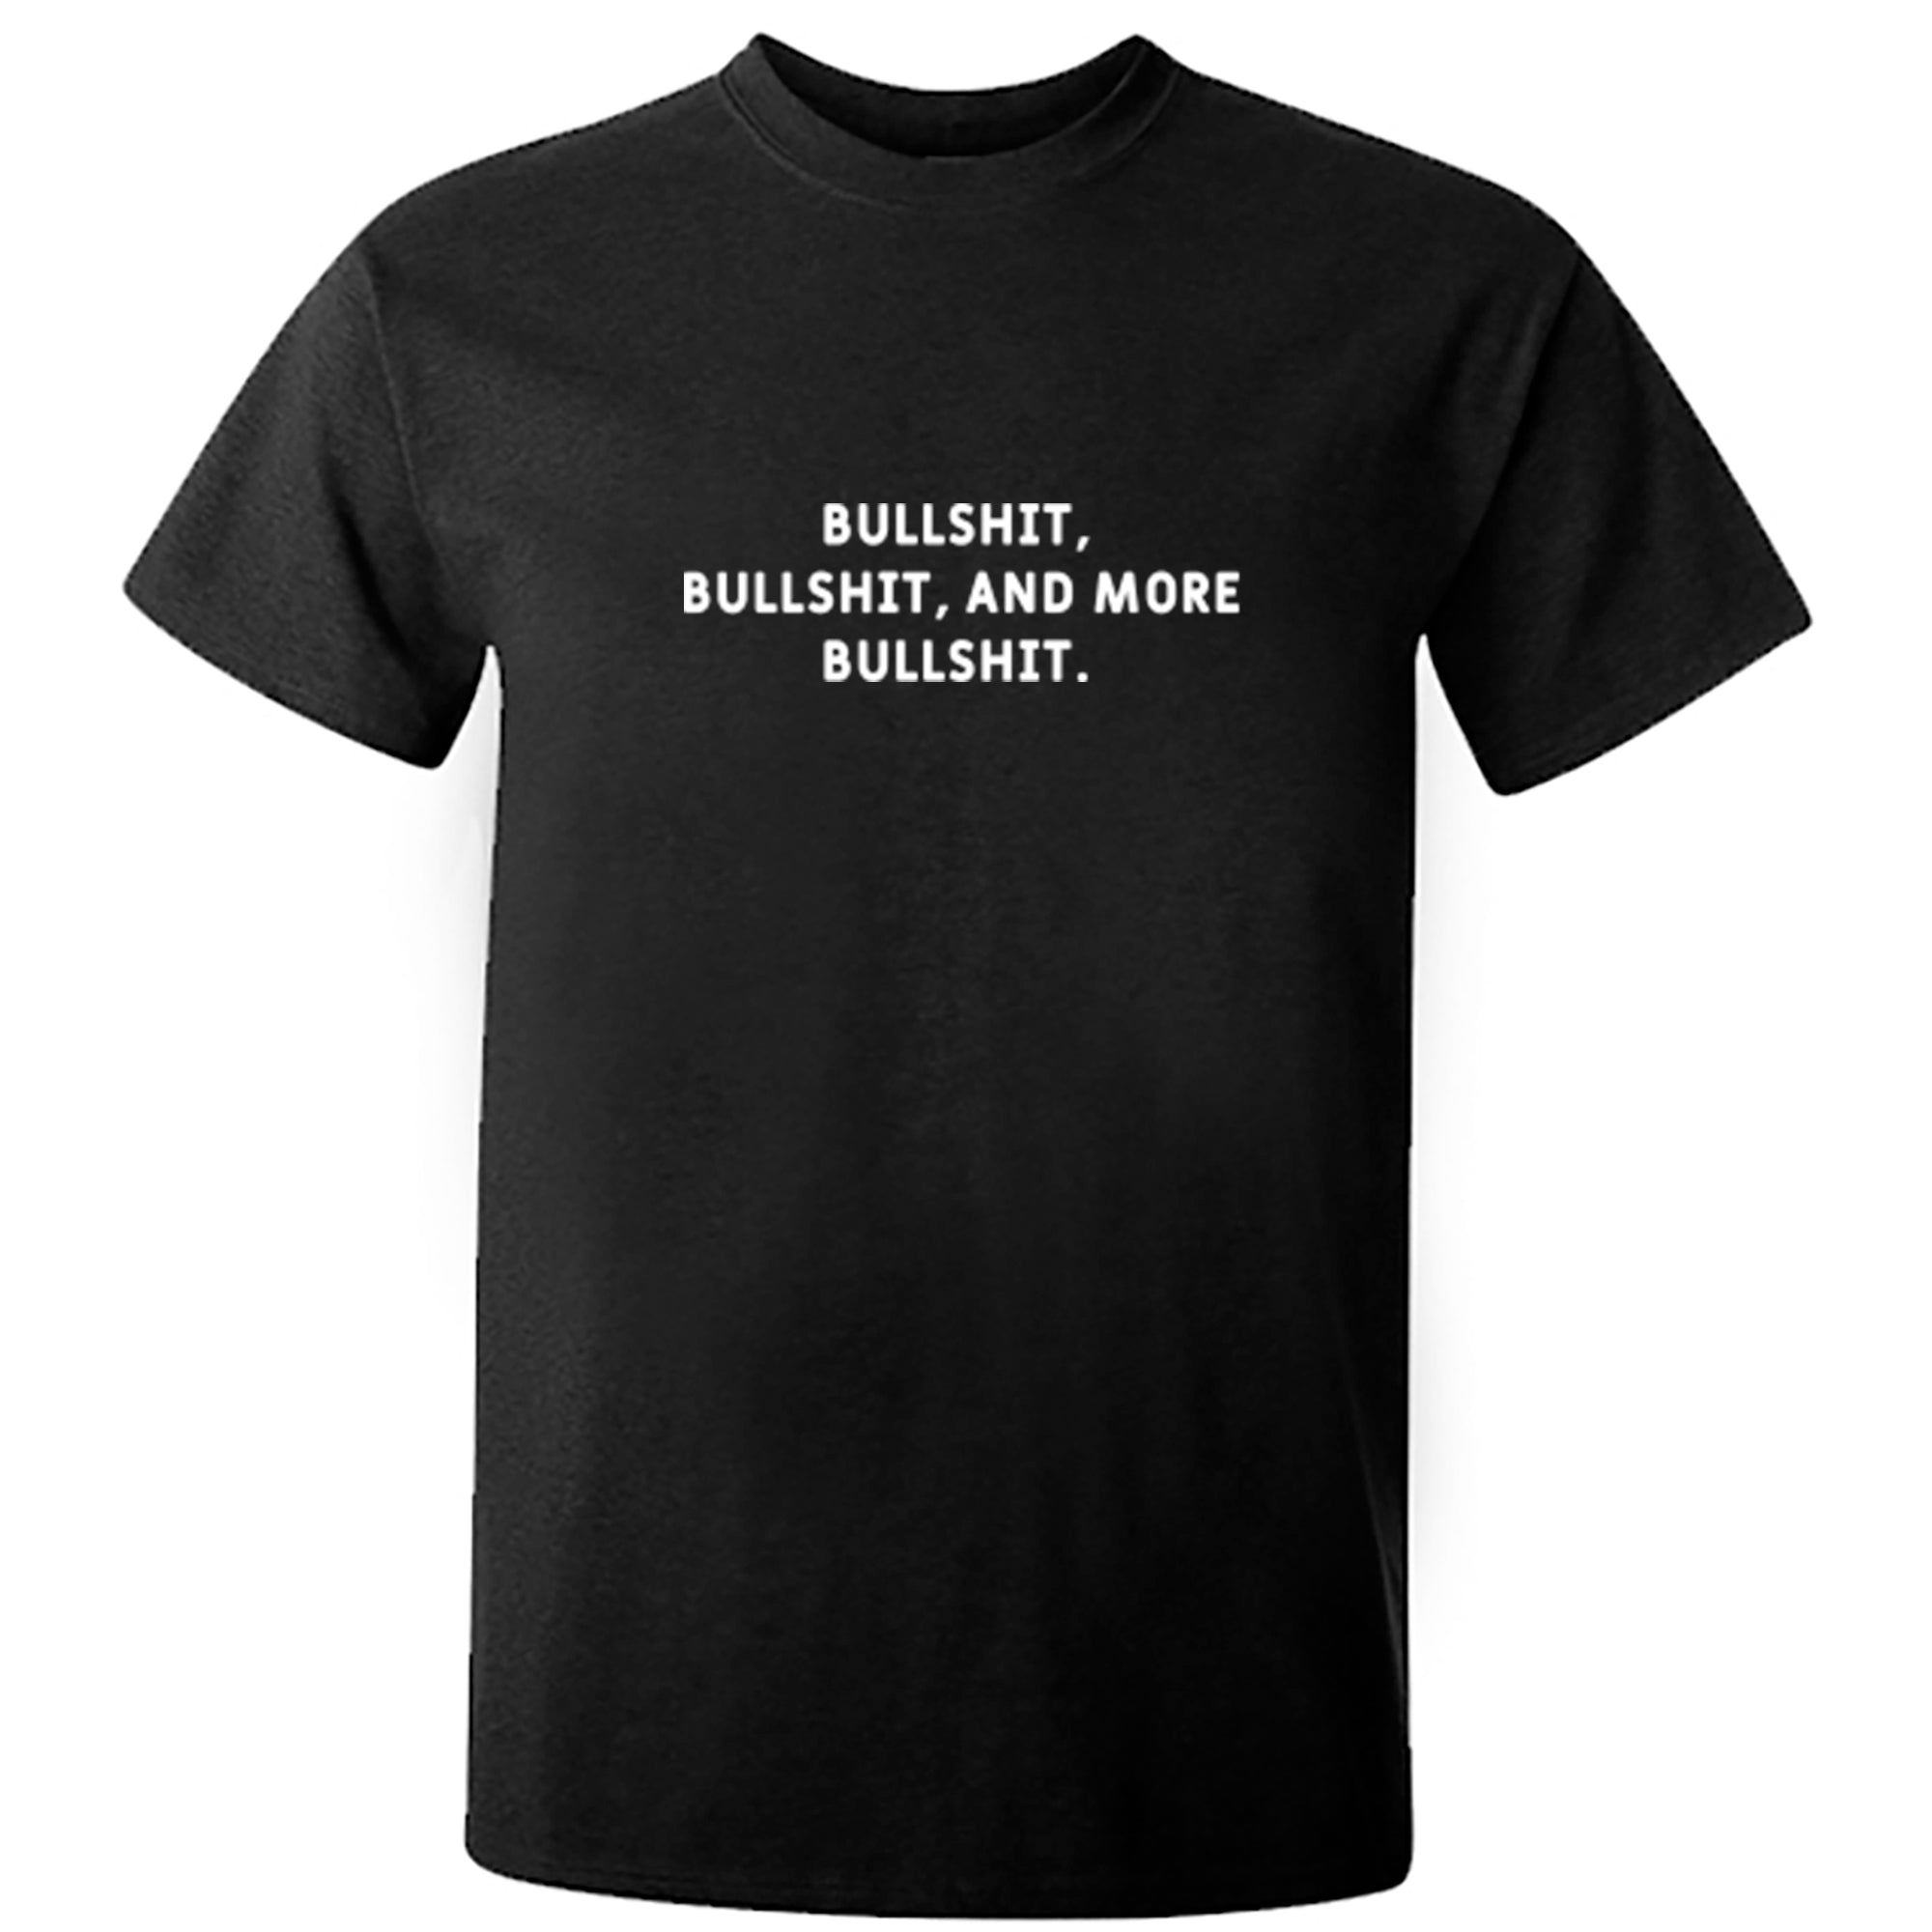 Bullshit, Bullshit, And More Bullshit Unisex Fit T-Shirt S1033 - Illustrated Identity Ltd.